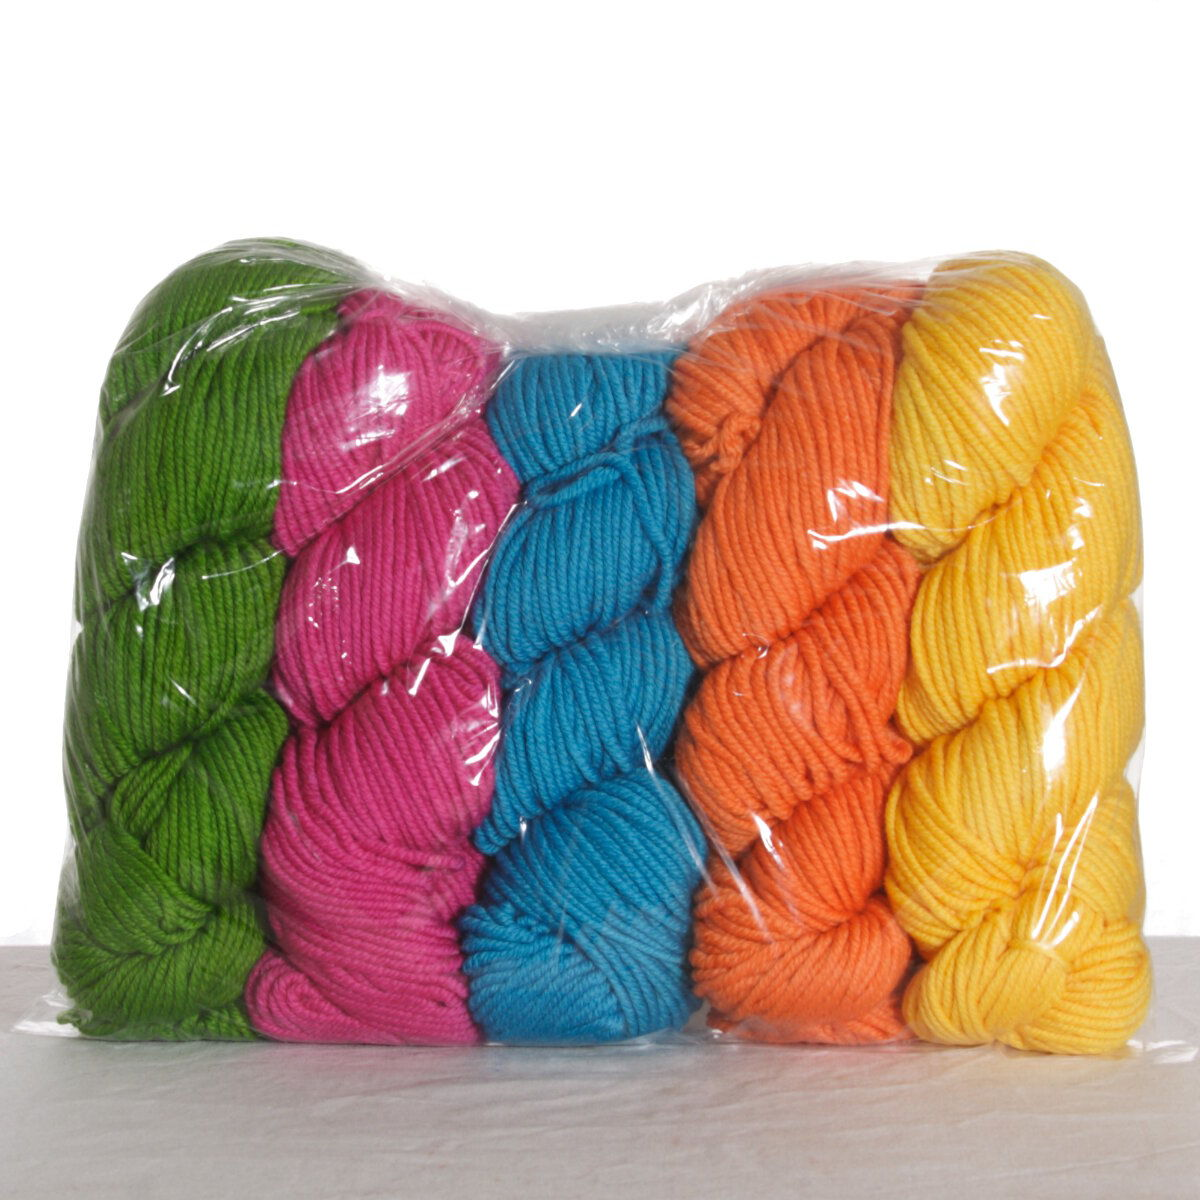 4ff4c4fcd Lorna s Laces The Marley Blanket KAL Kits Yarn - Pedro Video Reviews ...